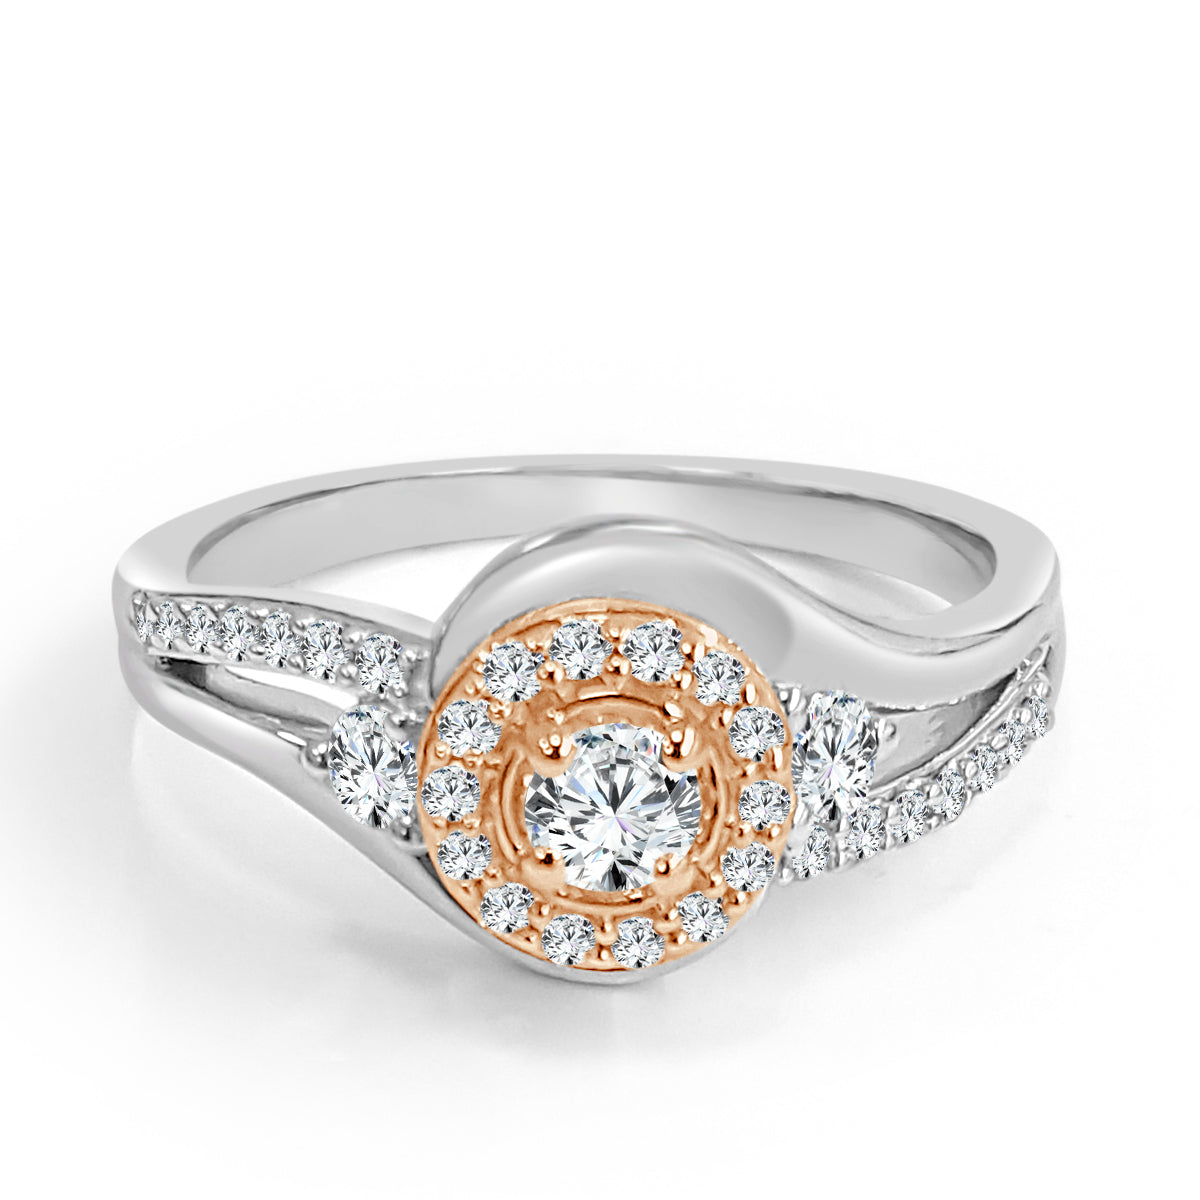 Two Tone Bypass Diamond Halo Engagement Ring